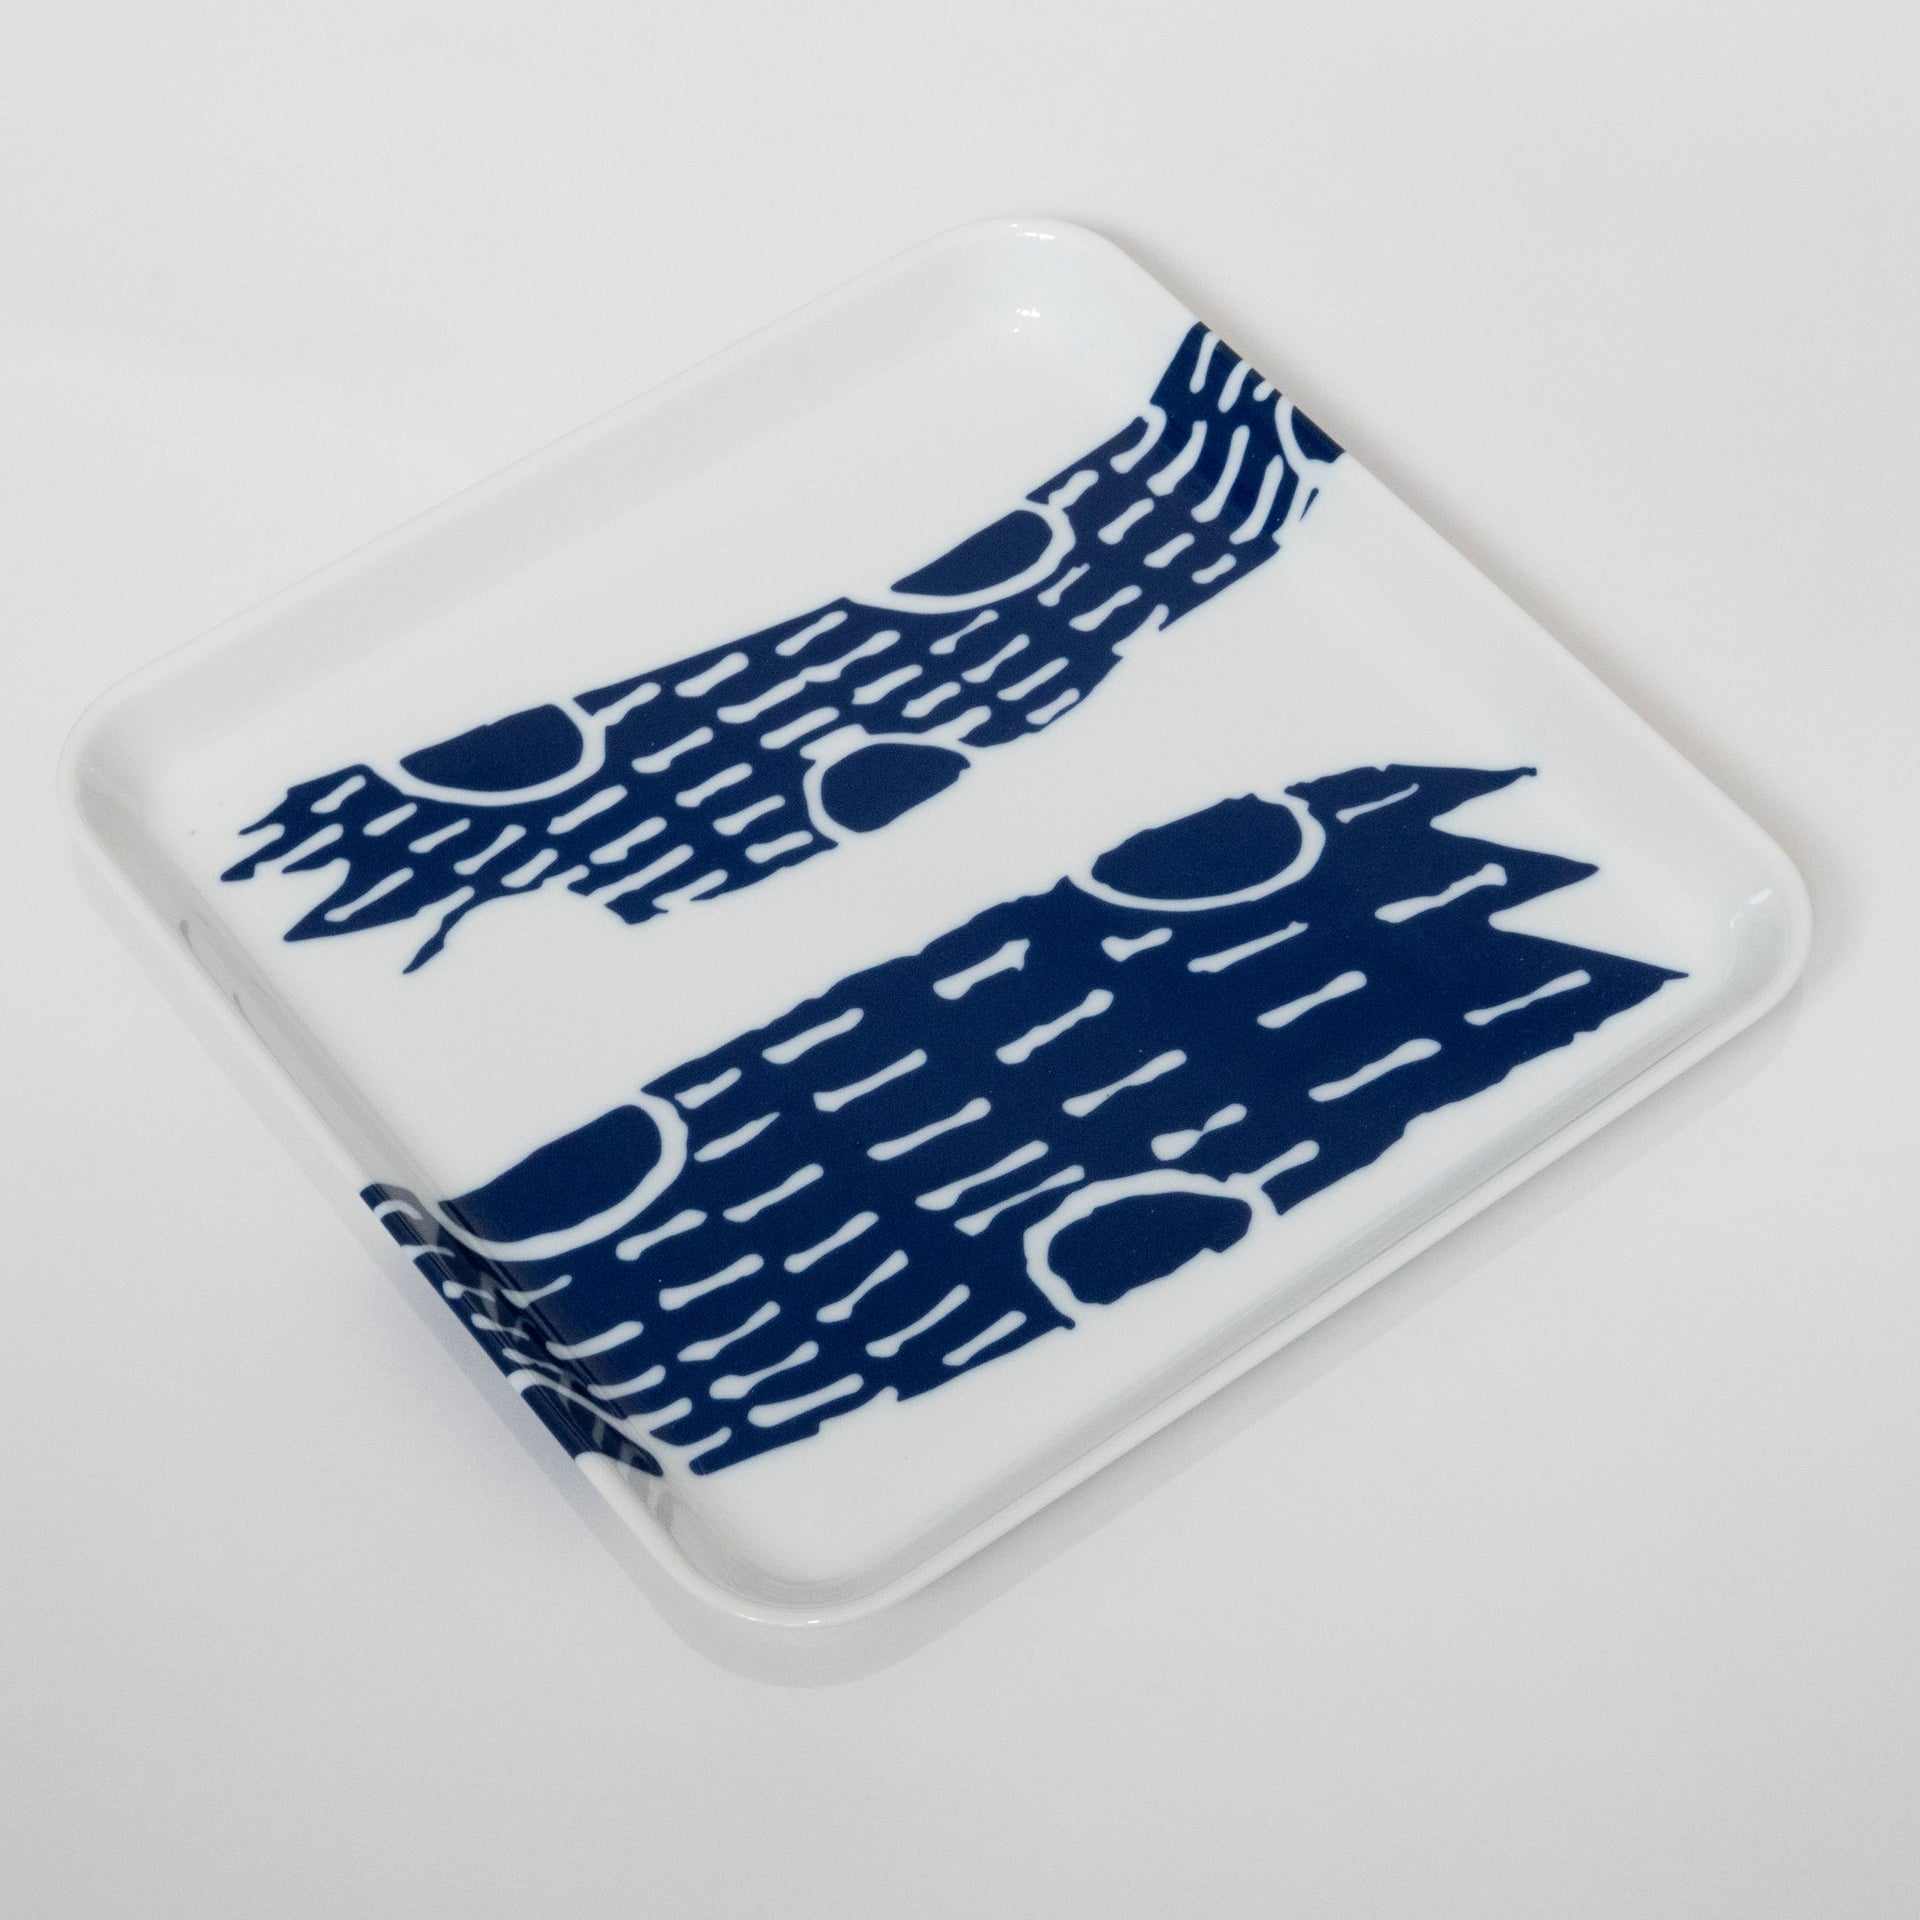 Supermama and TOUCH SpecialCrafts <br> 21cm Square Tray (Blue)